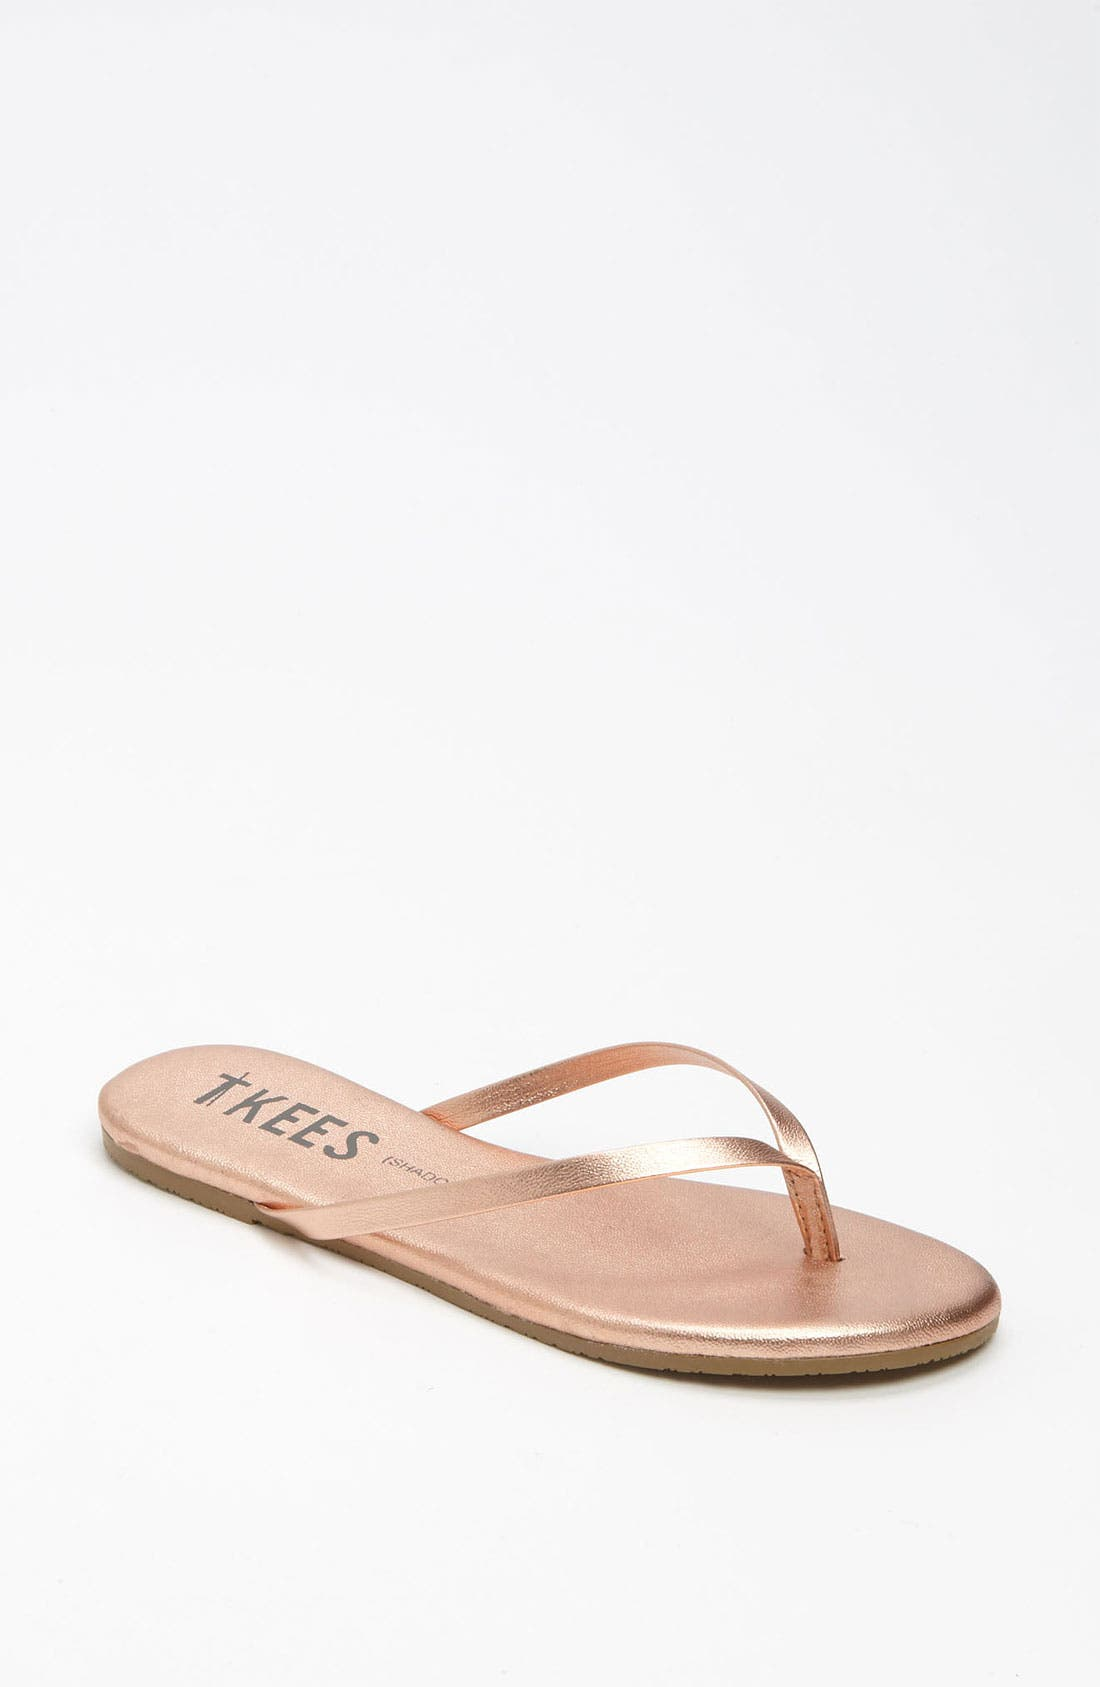 Main Image - TKEES 'Highlighters' Flip Flop